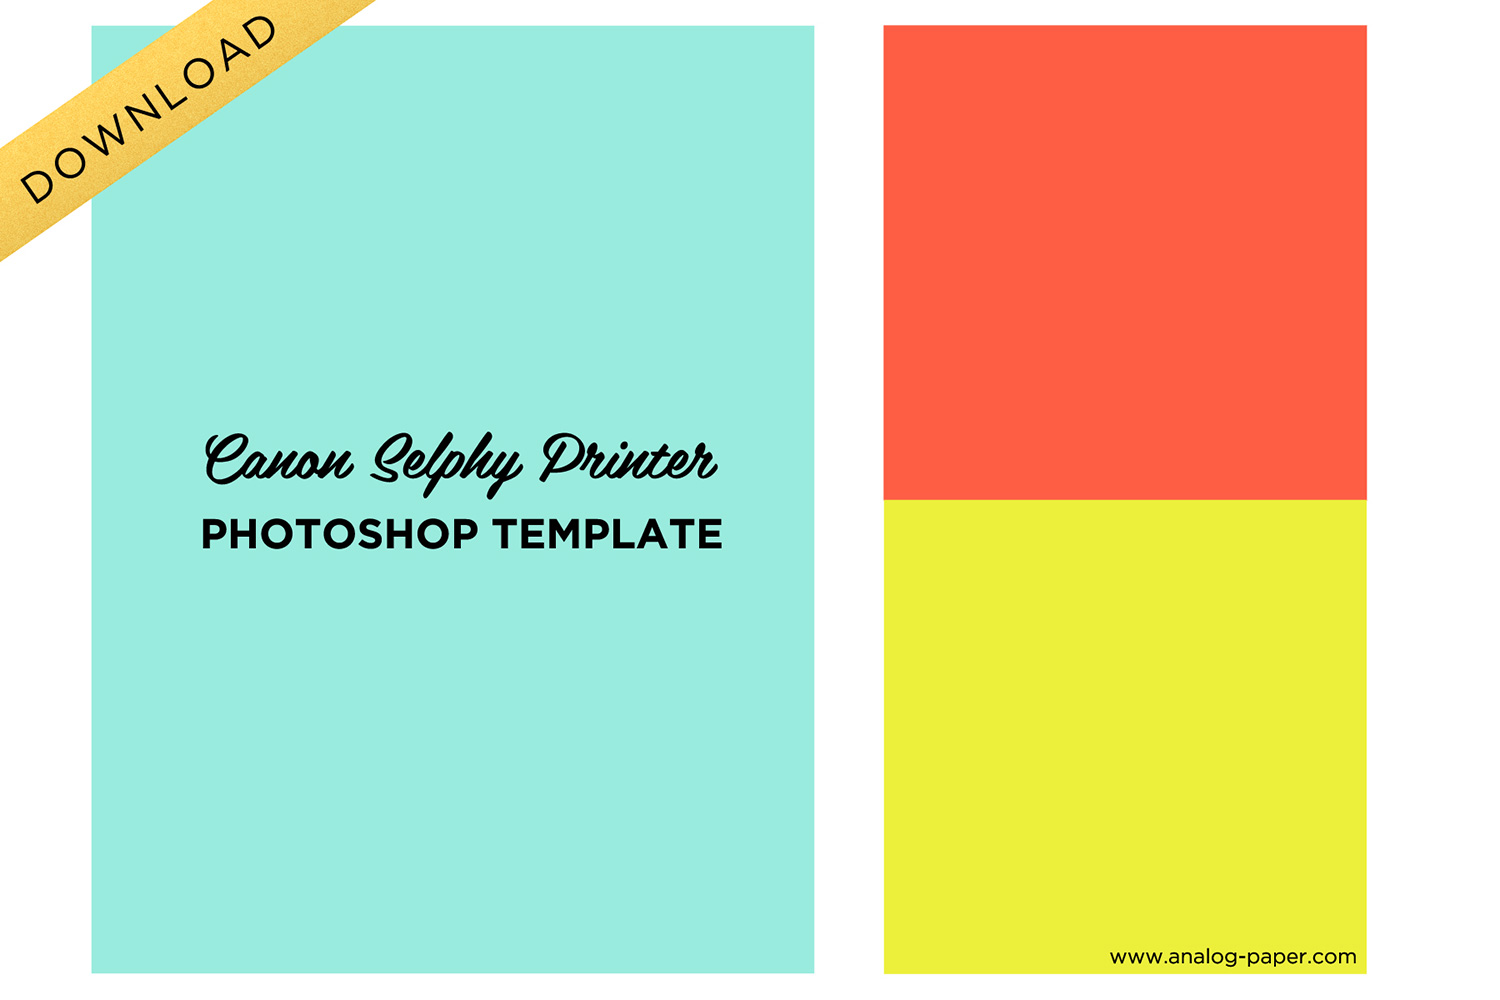 Analog Paper | Download | Canon Selphy Template